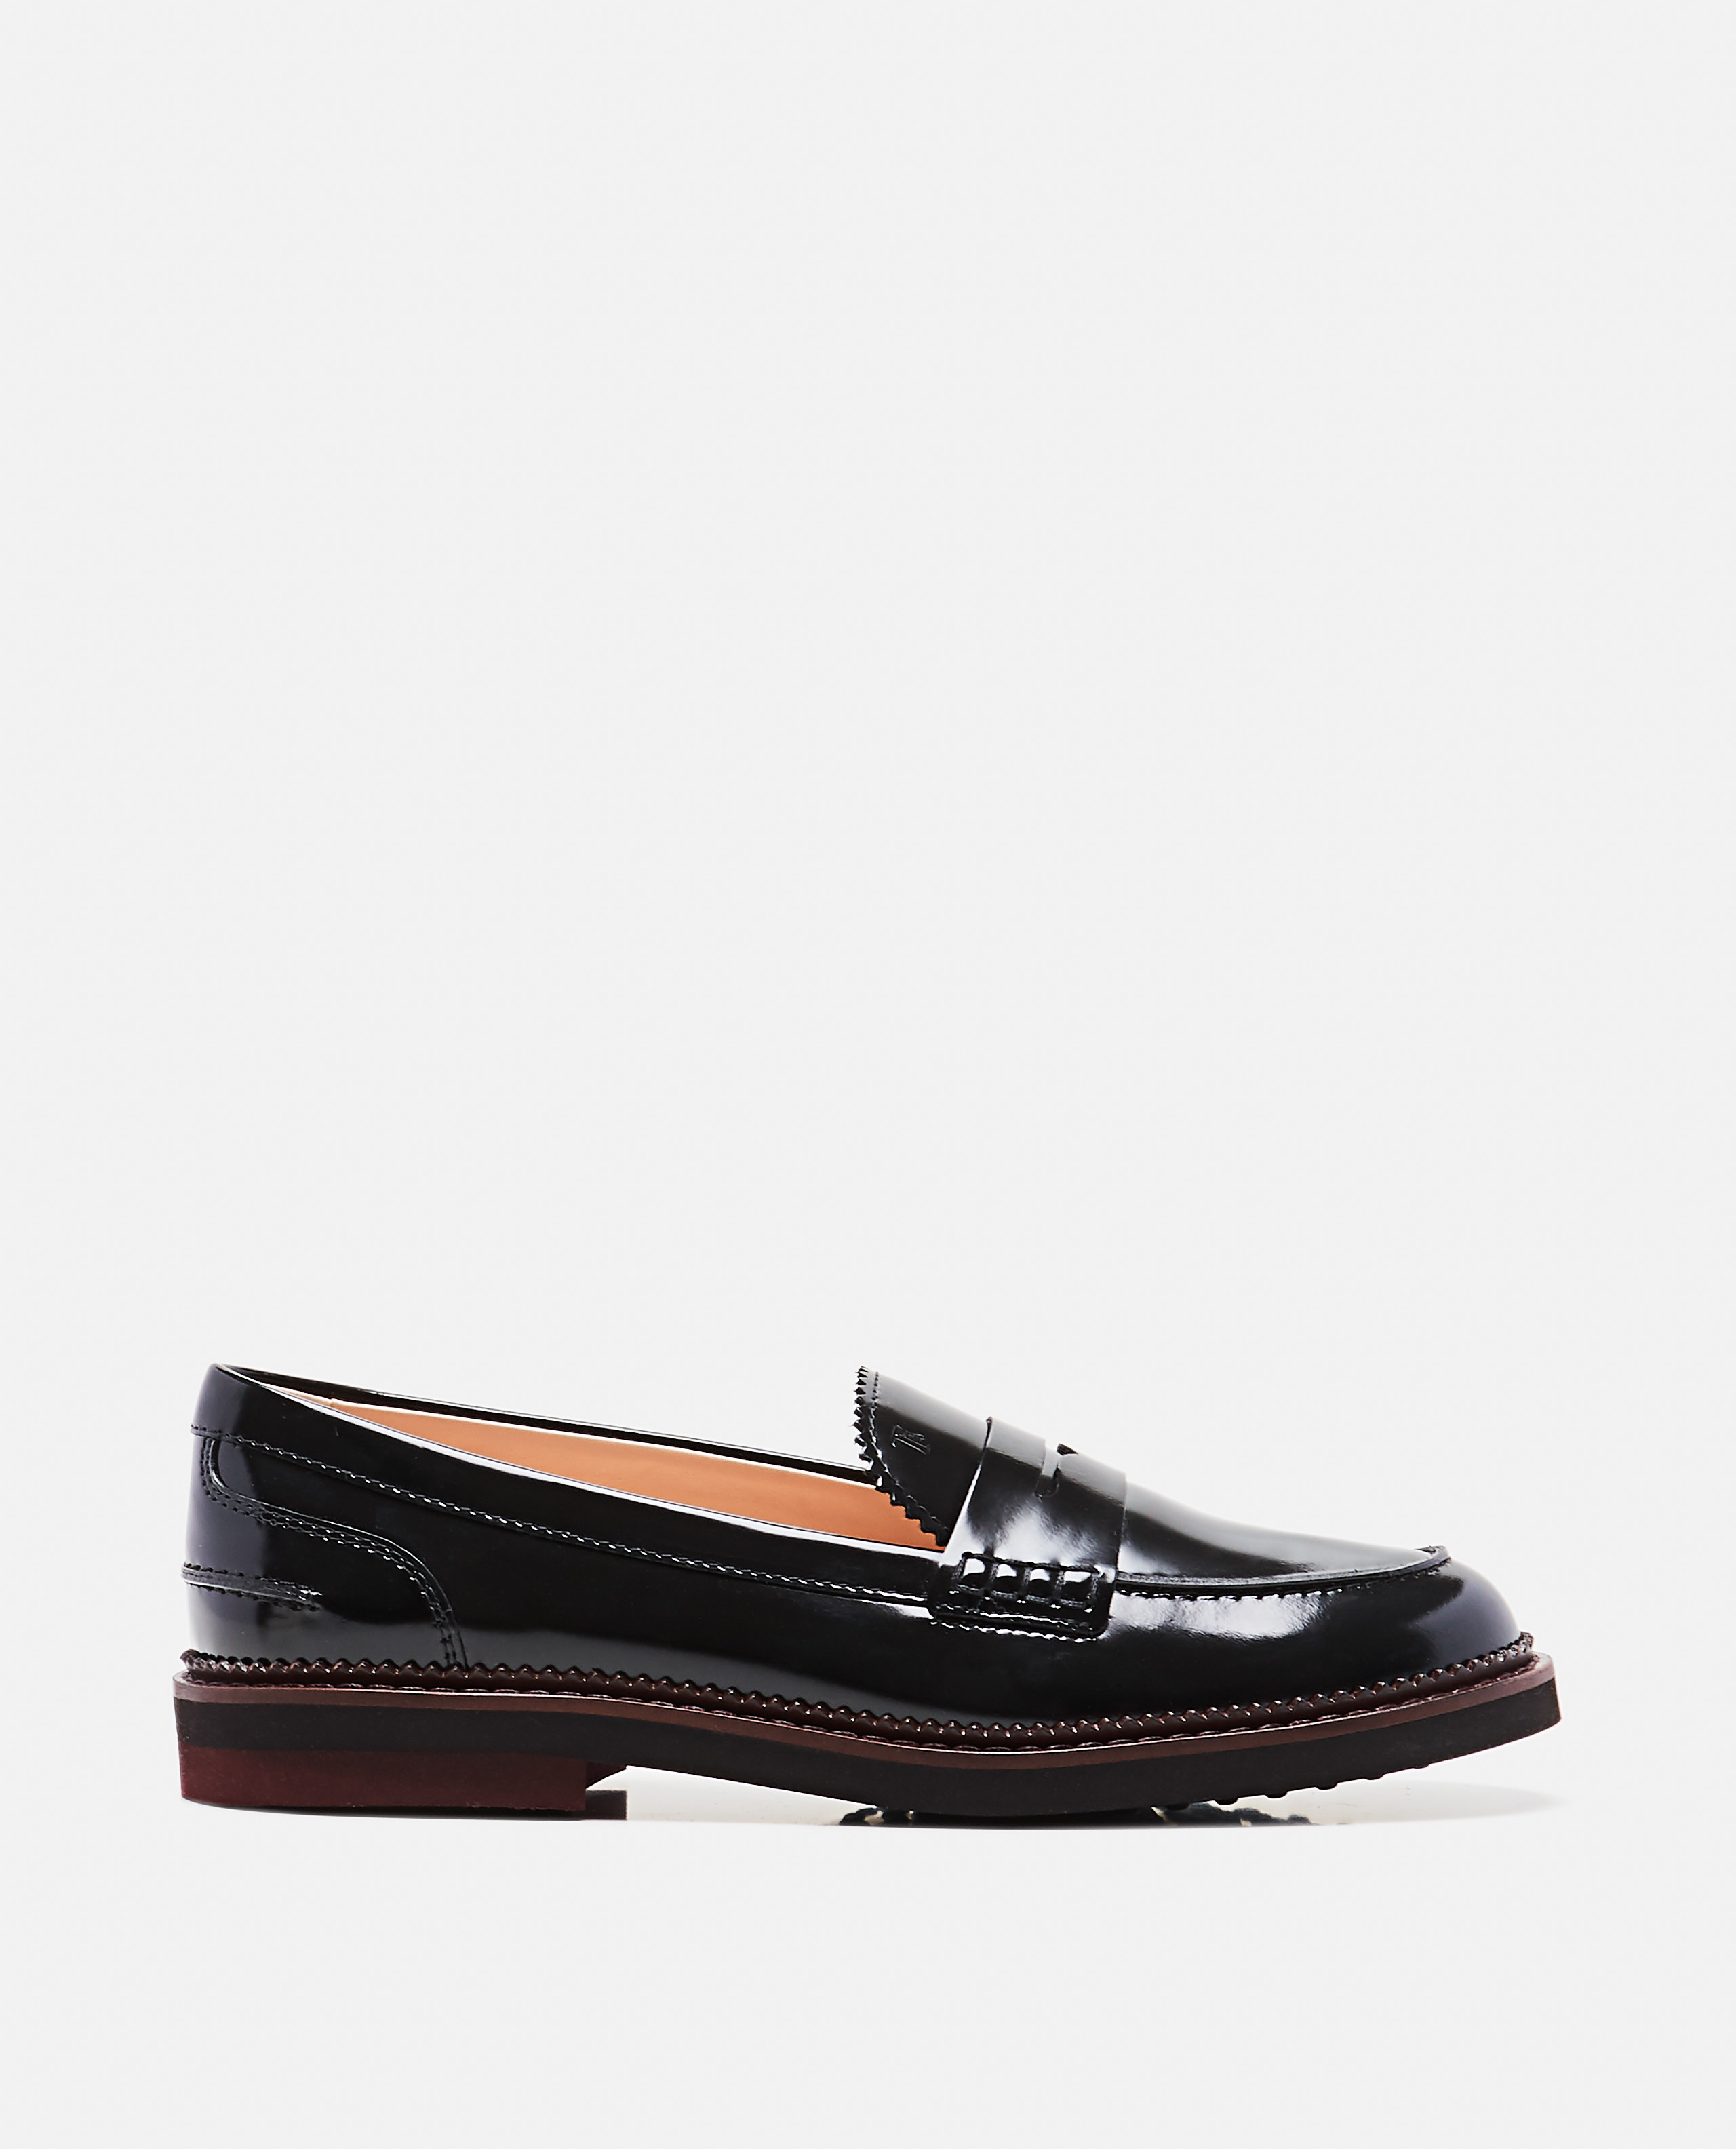 Tods College Moccasin